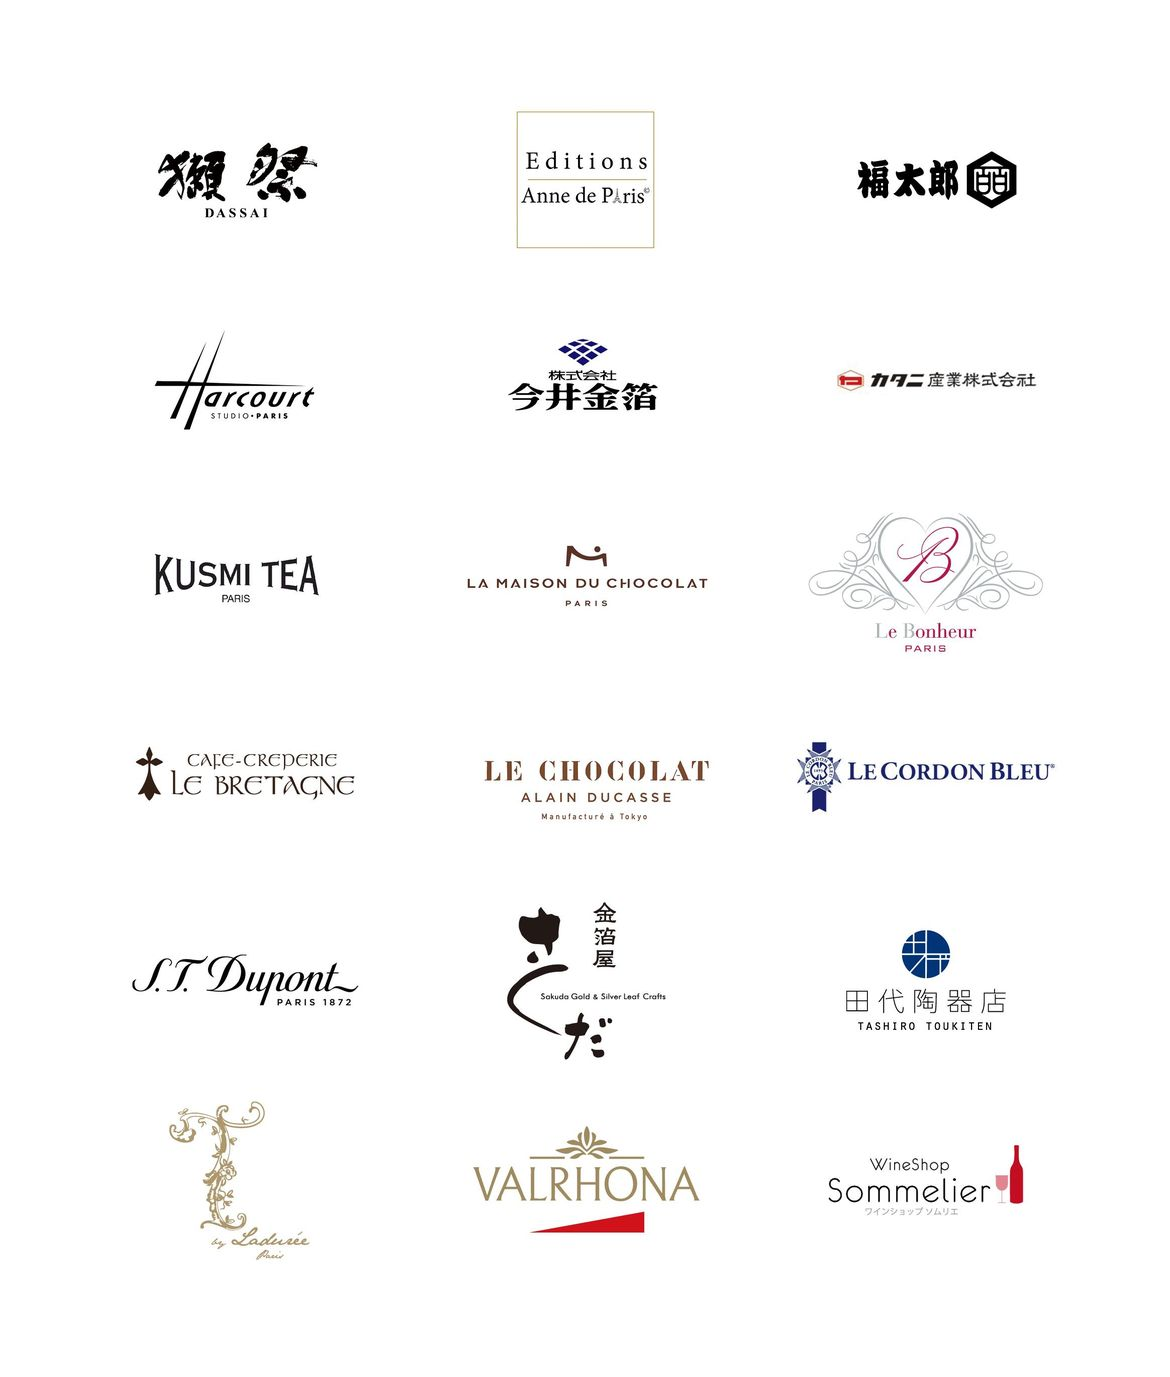 Brands participating